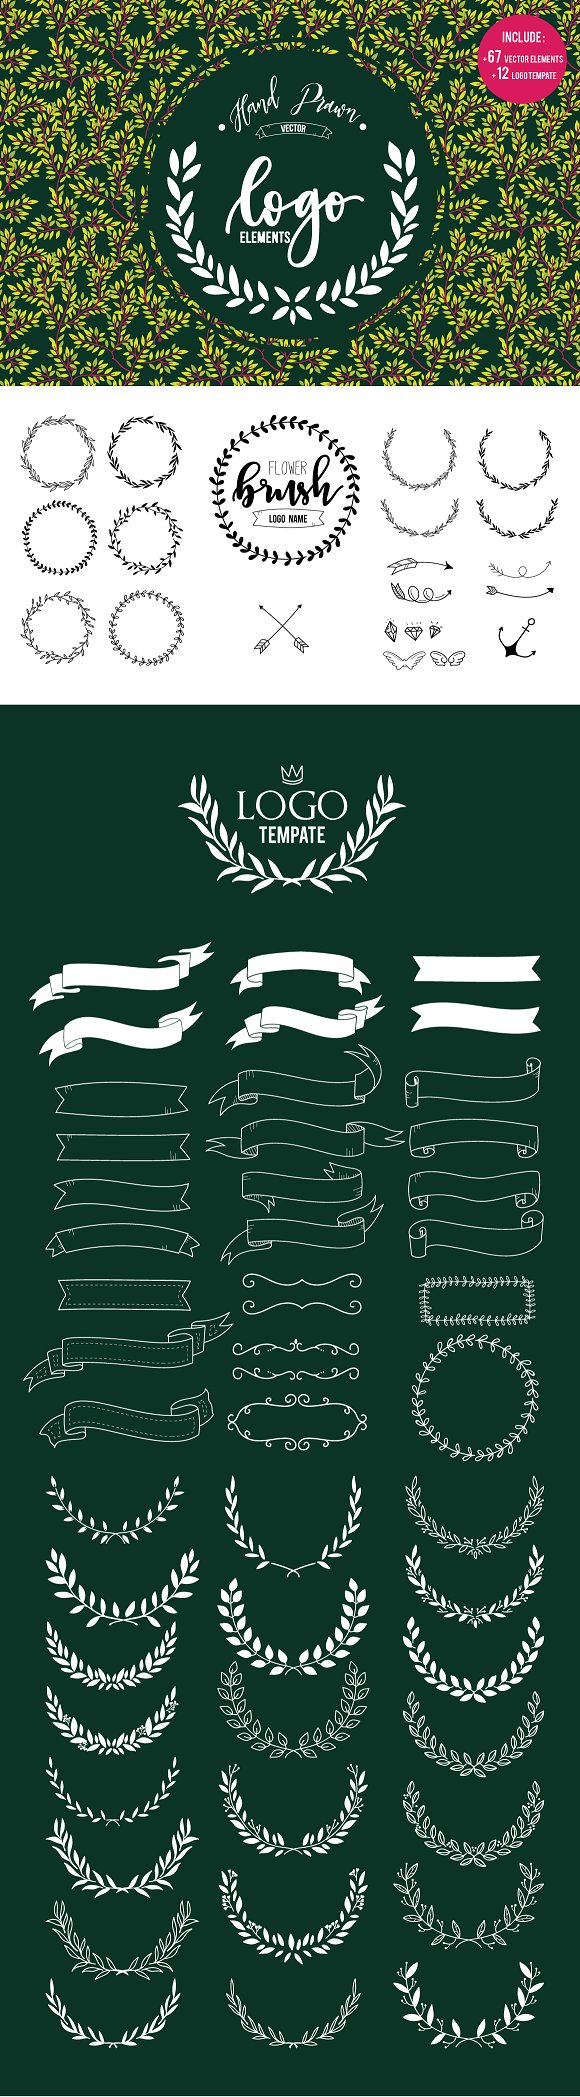 HAND DRAWLogo Design Element Kit  in Illustrations